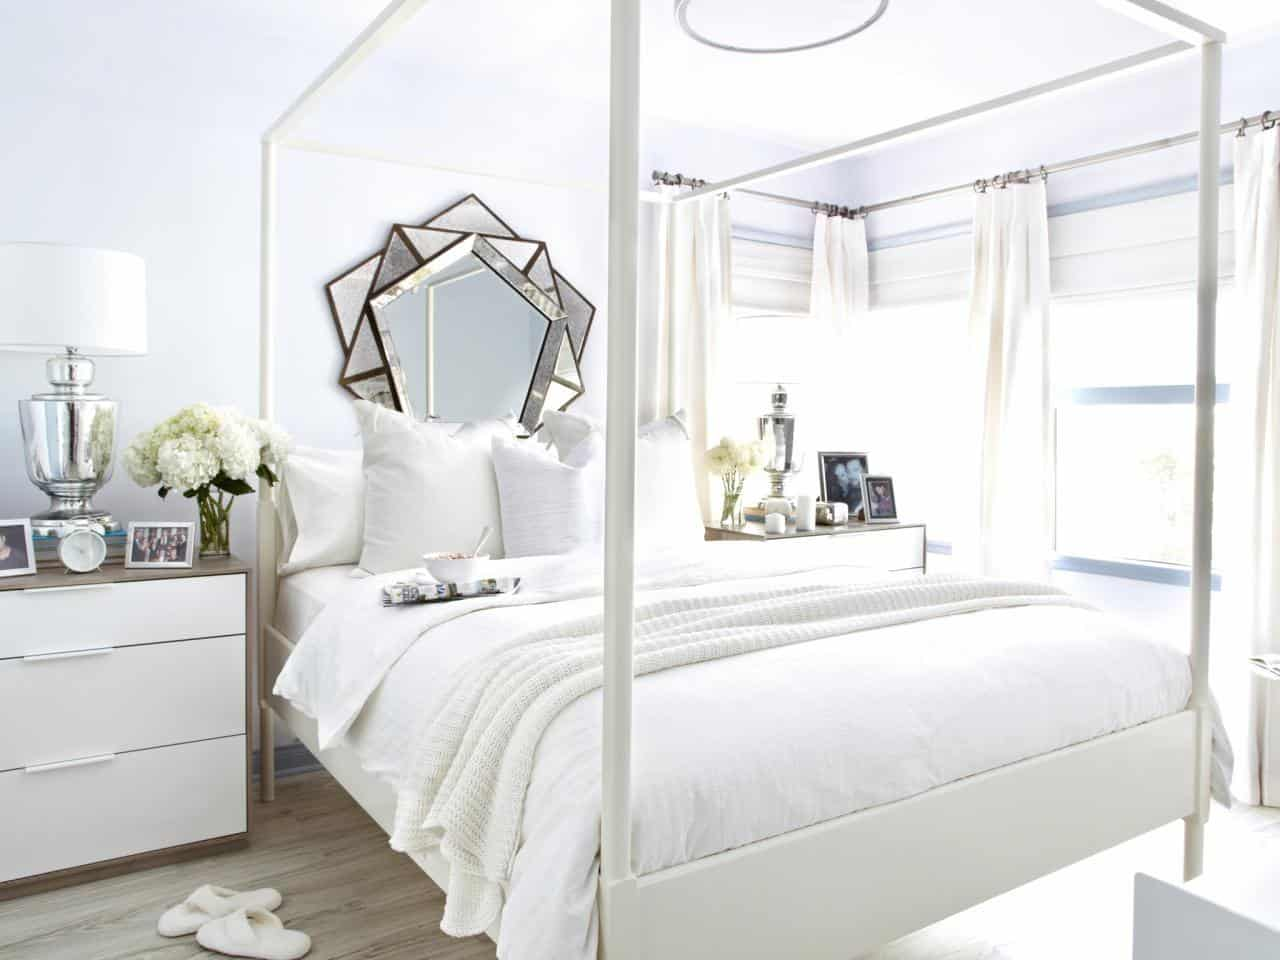 Guest room design furniture - Simple And Fresh